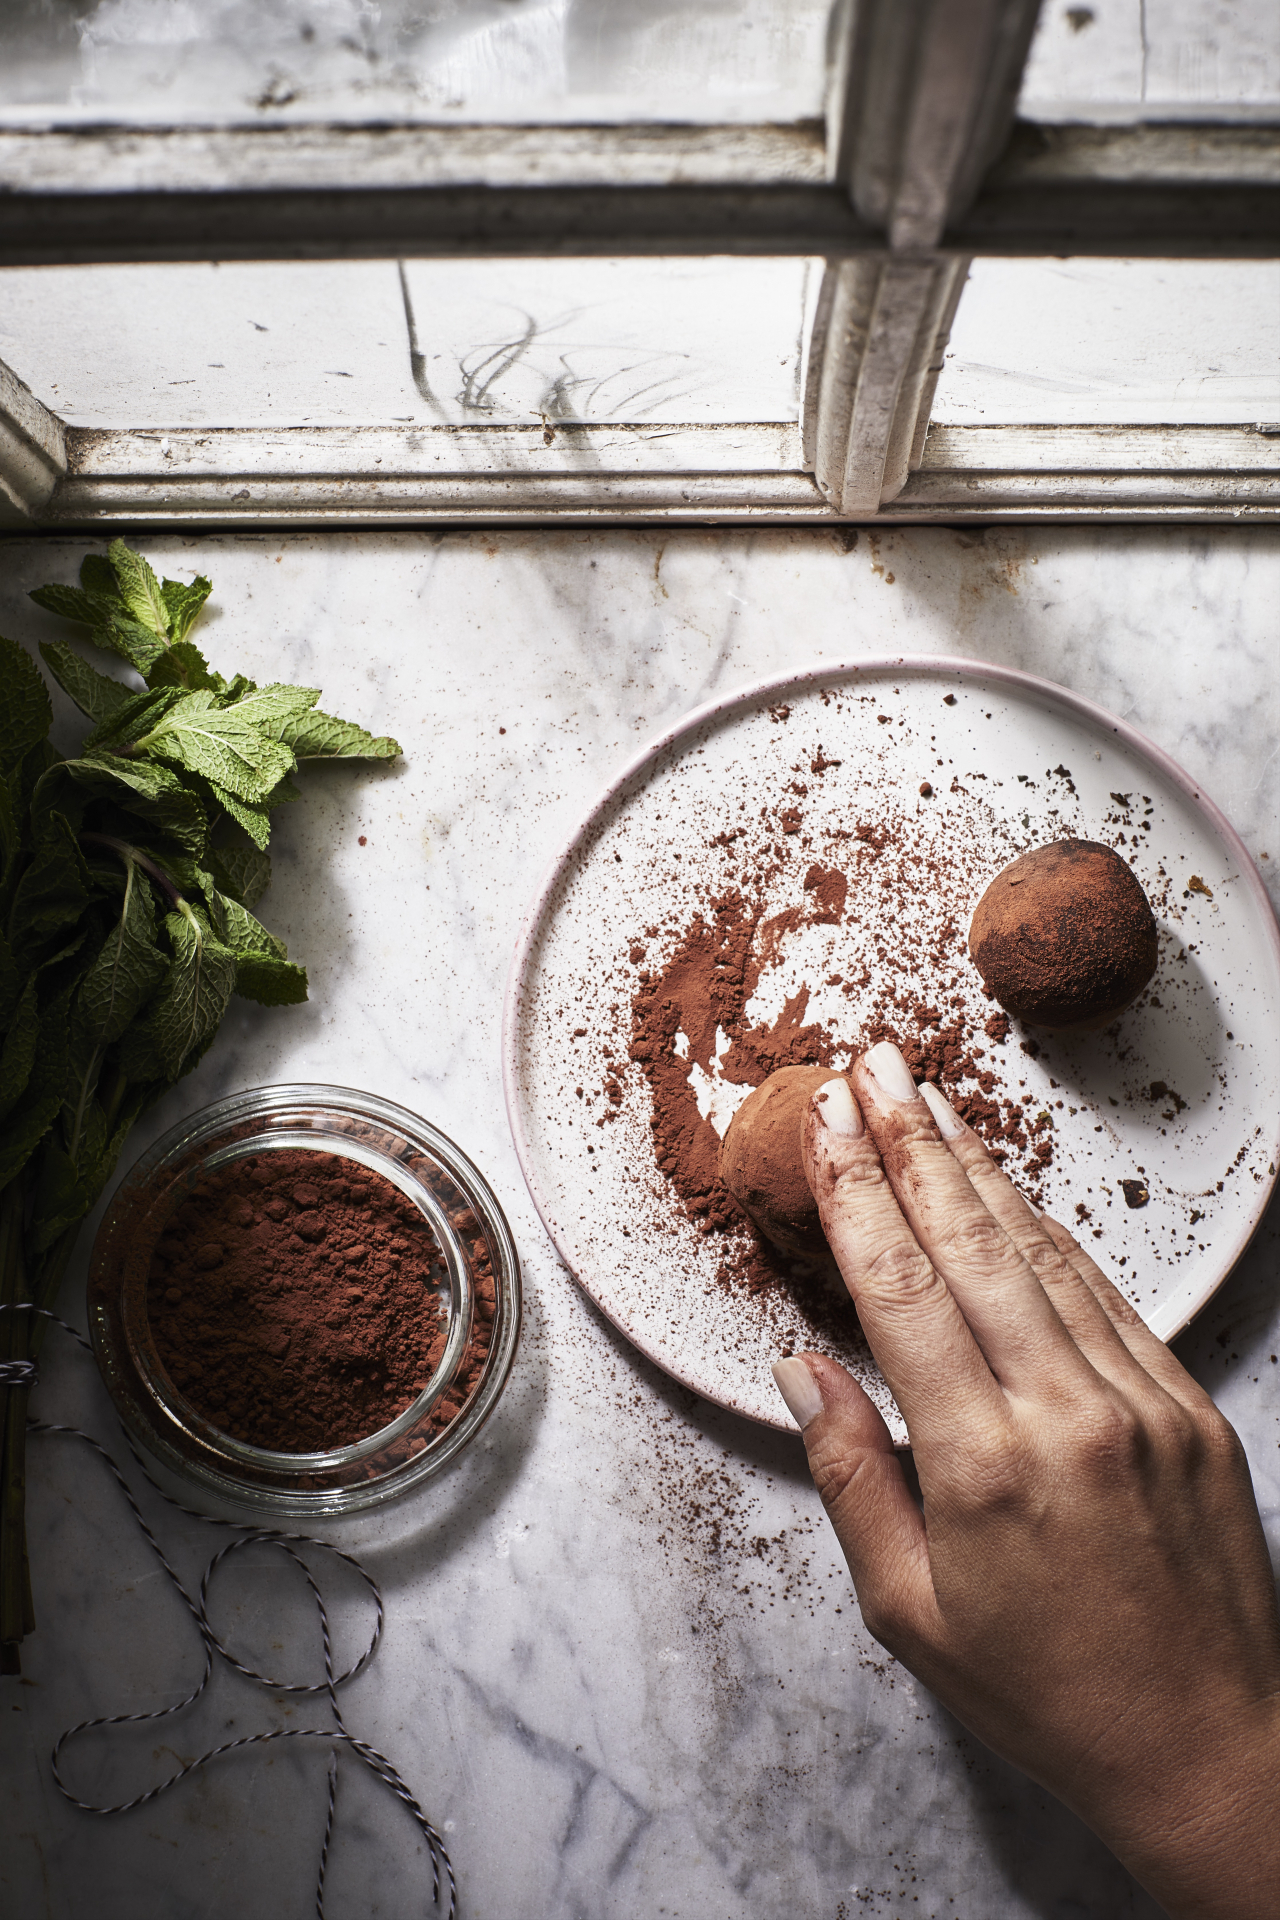 A hand rolling chocolate balls in cocoa powder on a white plate, on a marble worktop by a window.